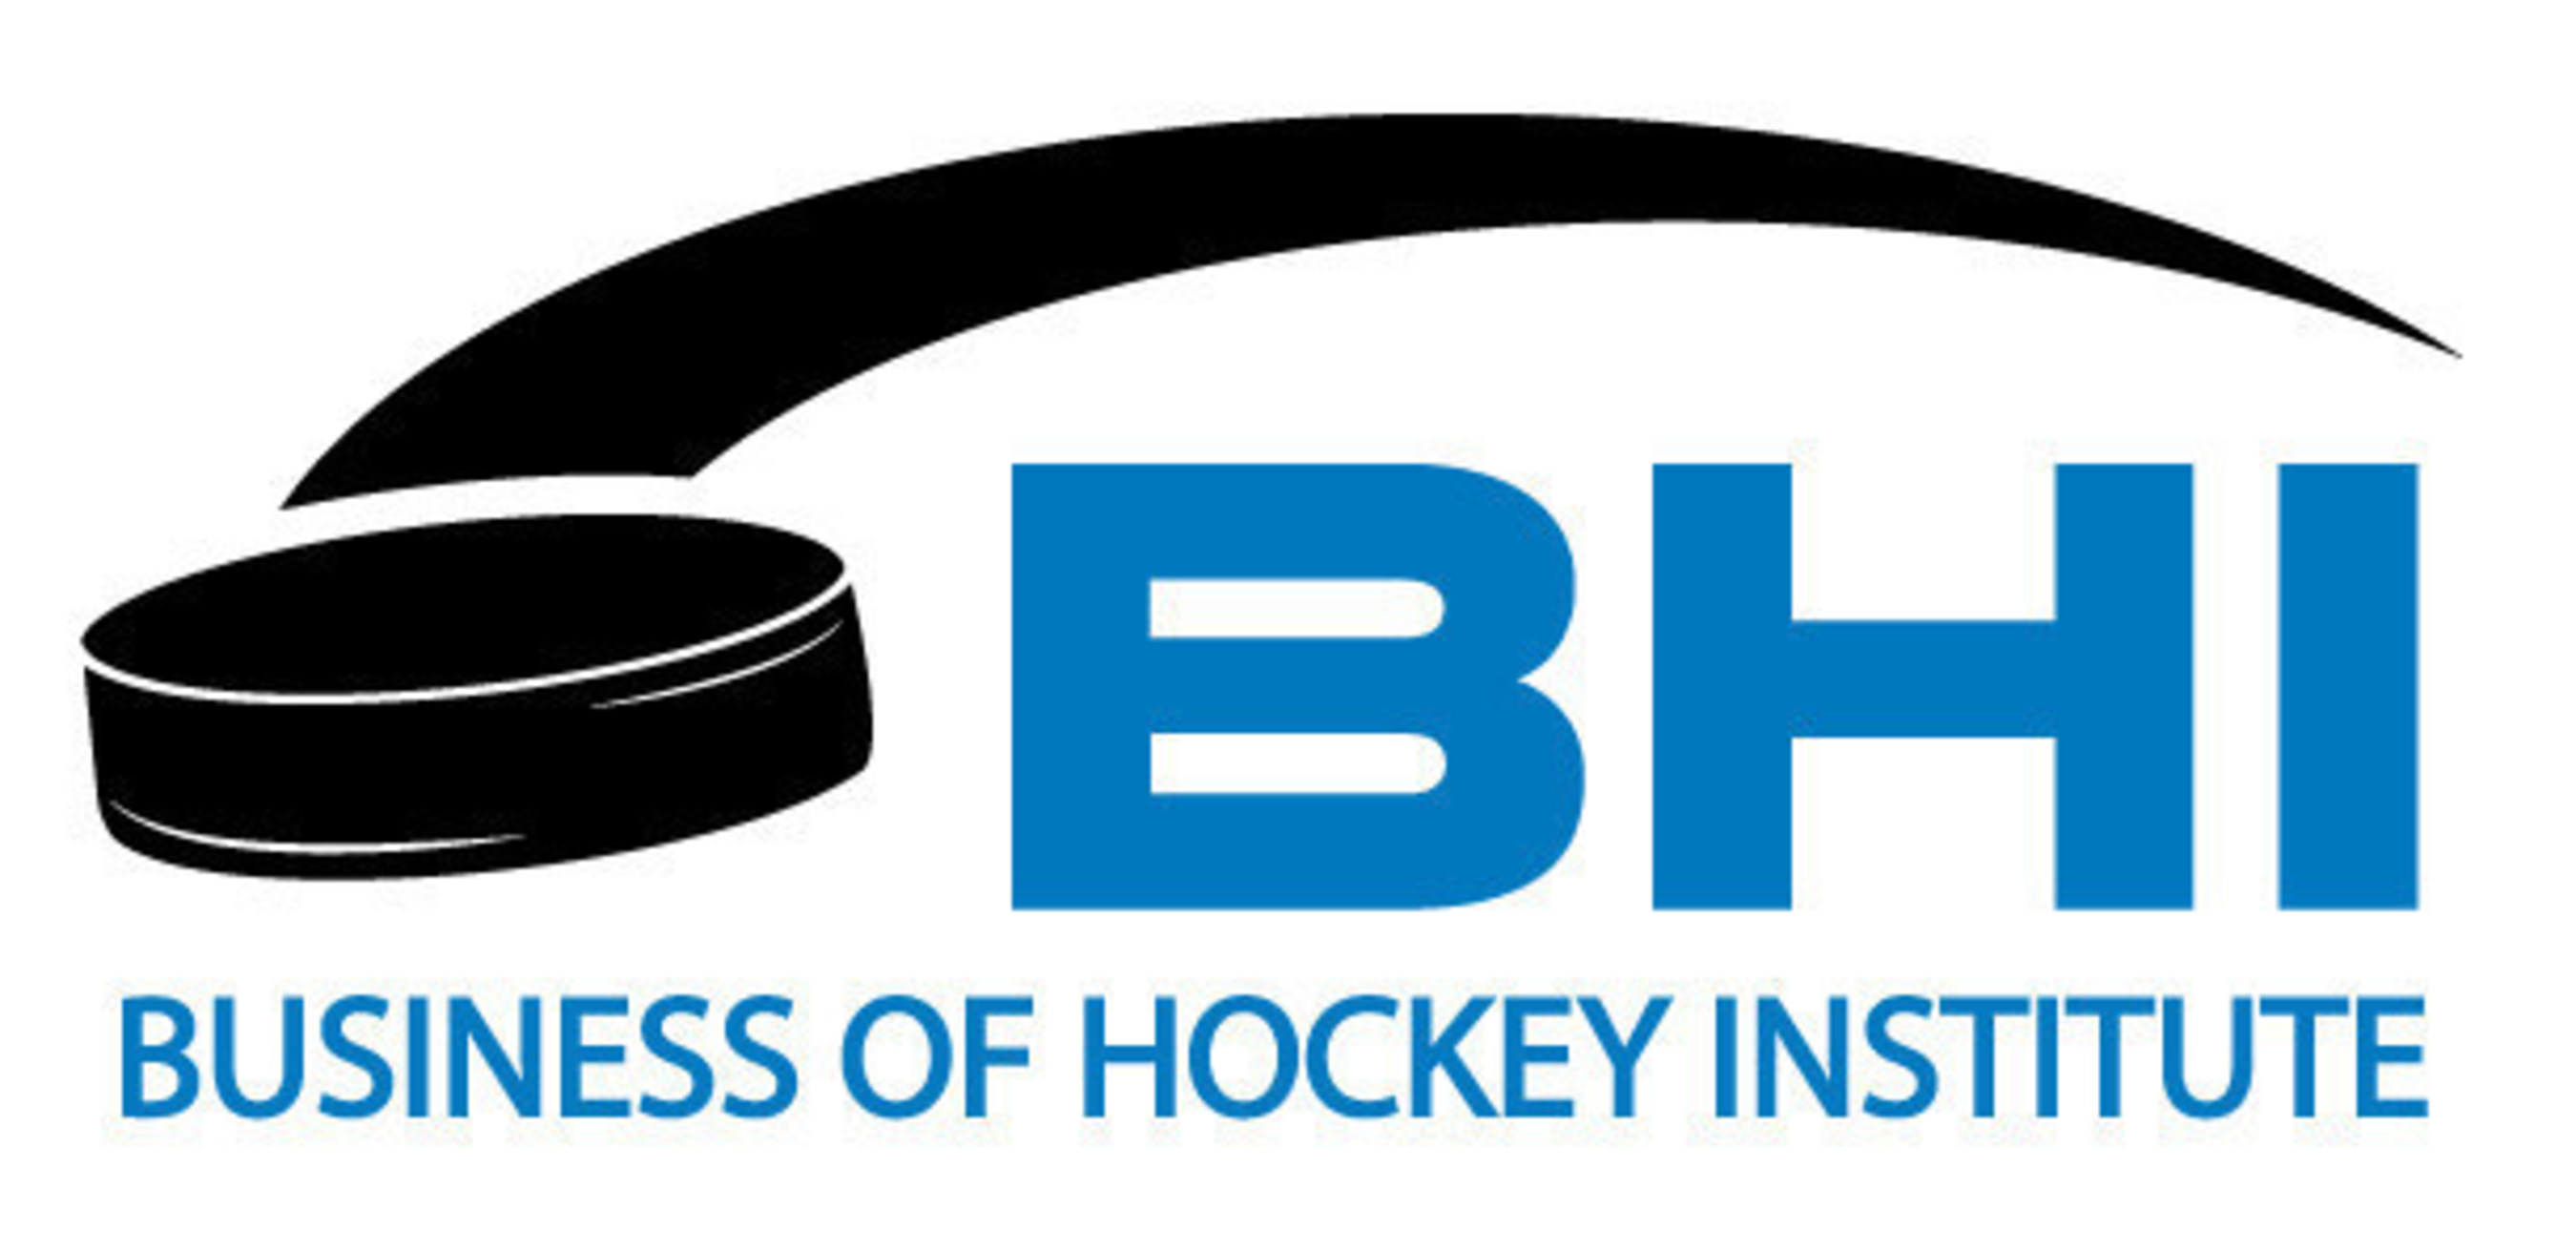 Business of Hockey Institute (BHI) to Offer Major Scholarships to Students Studying the Business of